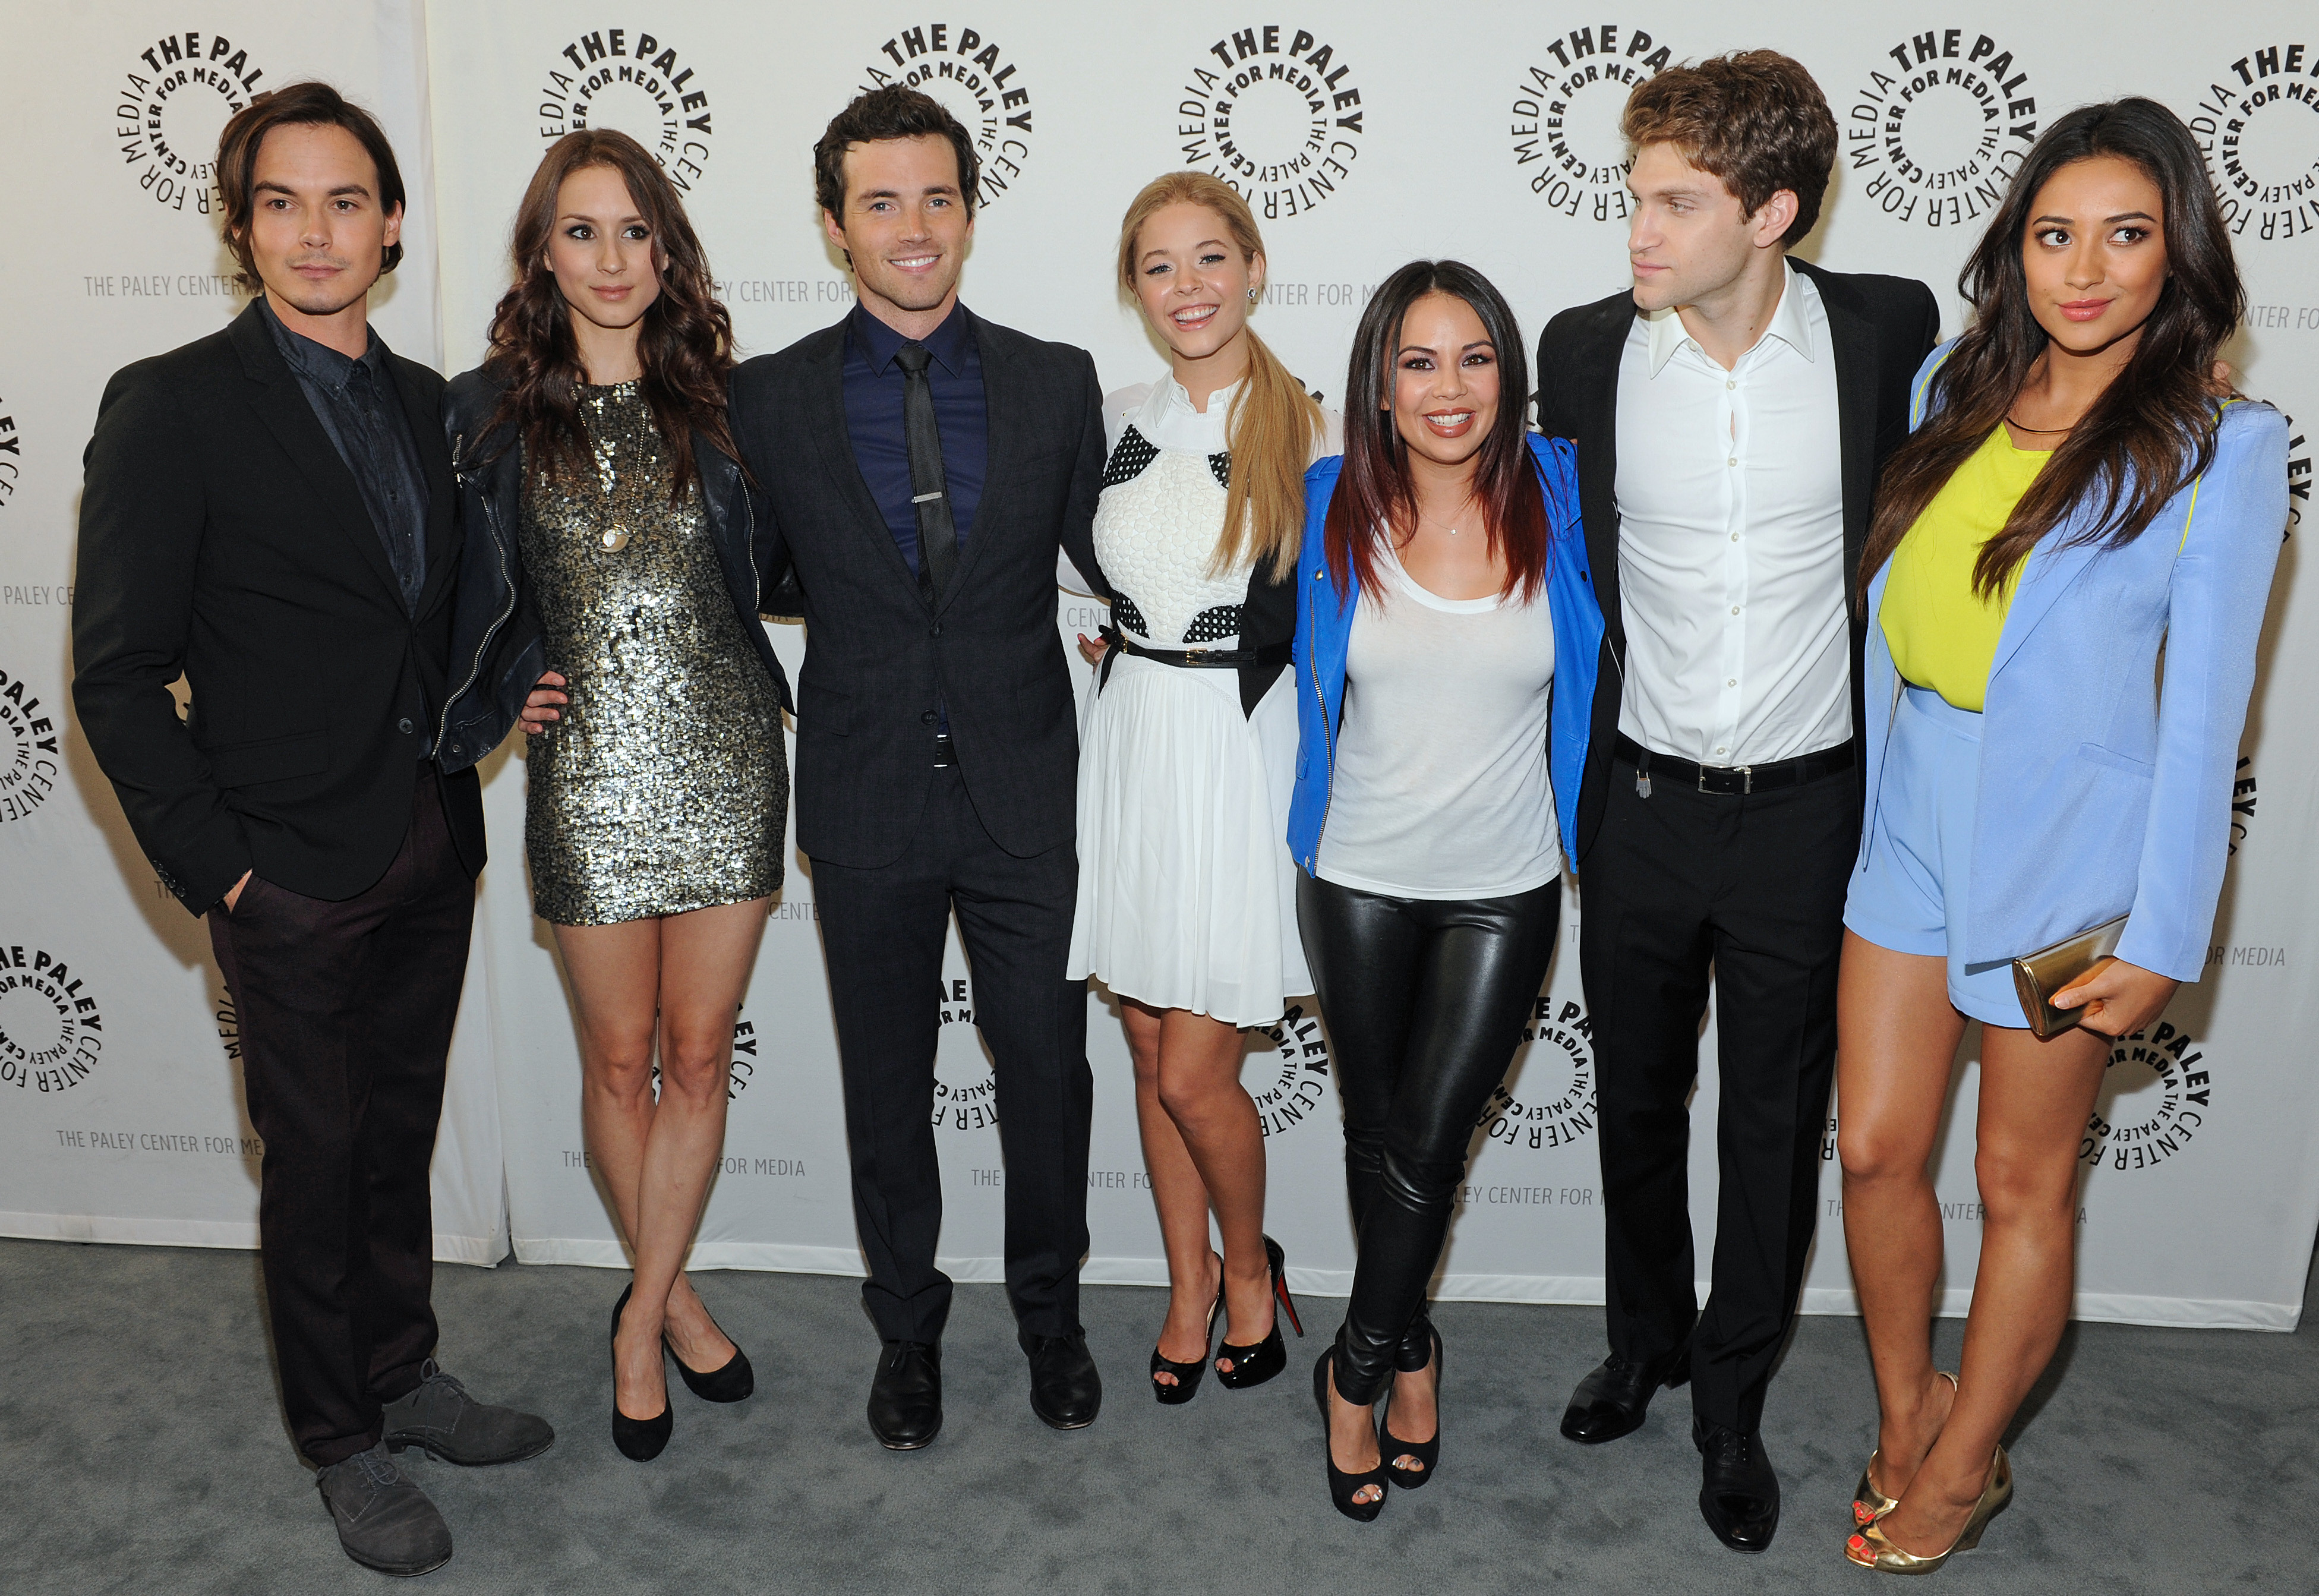 who are the pretty little liars cast dating in real life